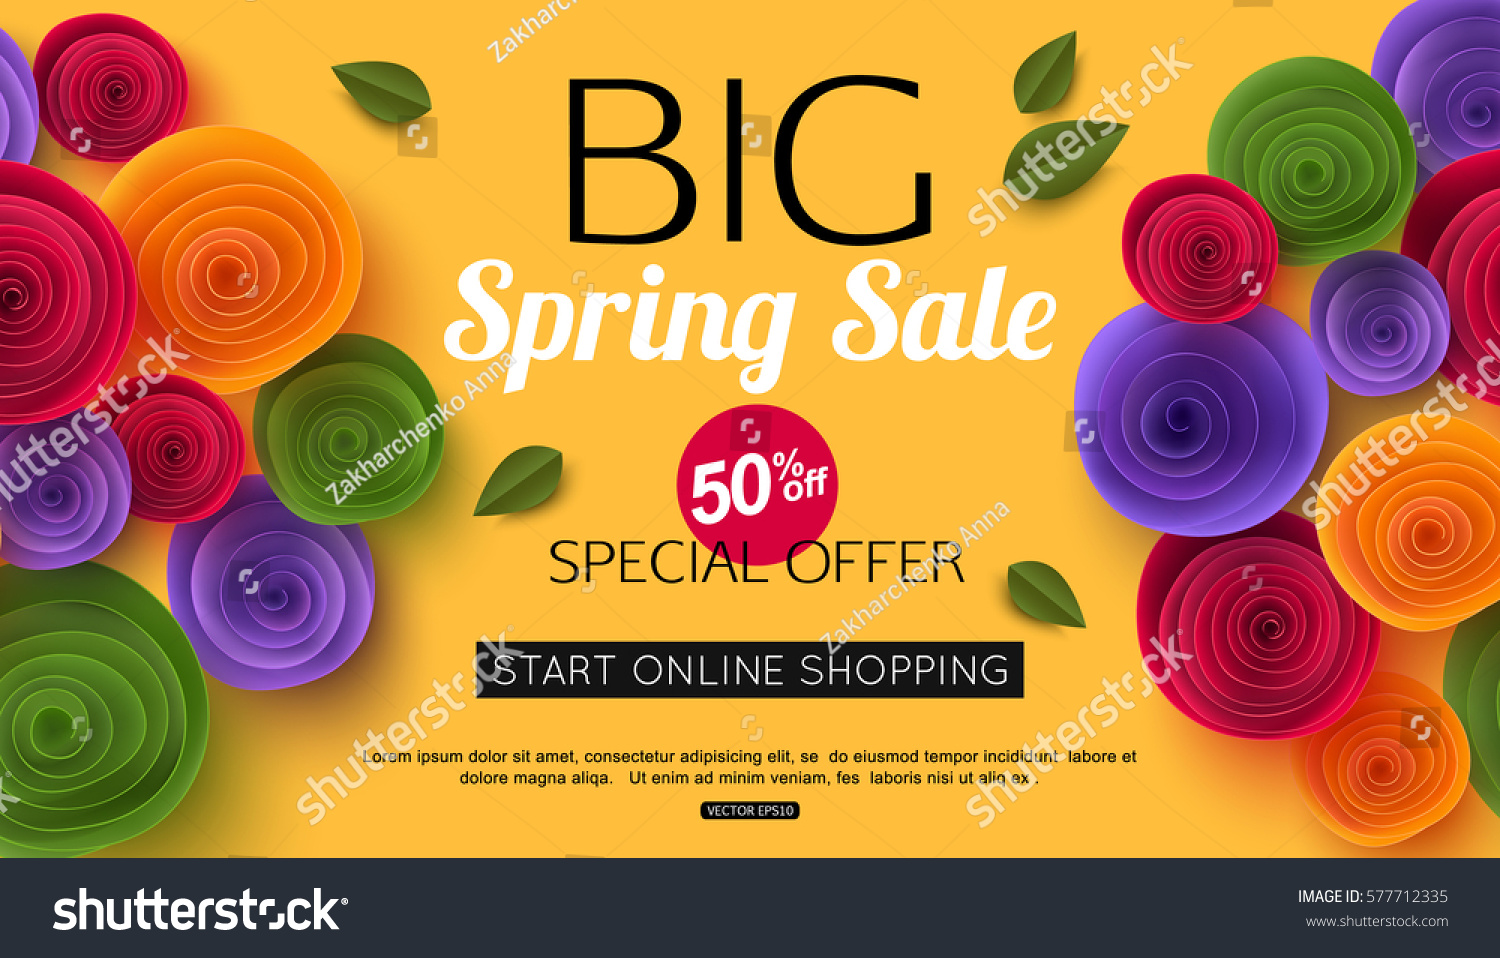 Spring sale banner paper flowers online stock vector 577712335 spring sale banner with paper flowers for online shopping advertising actions magazines and websites dhlflorist Image collections